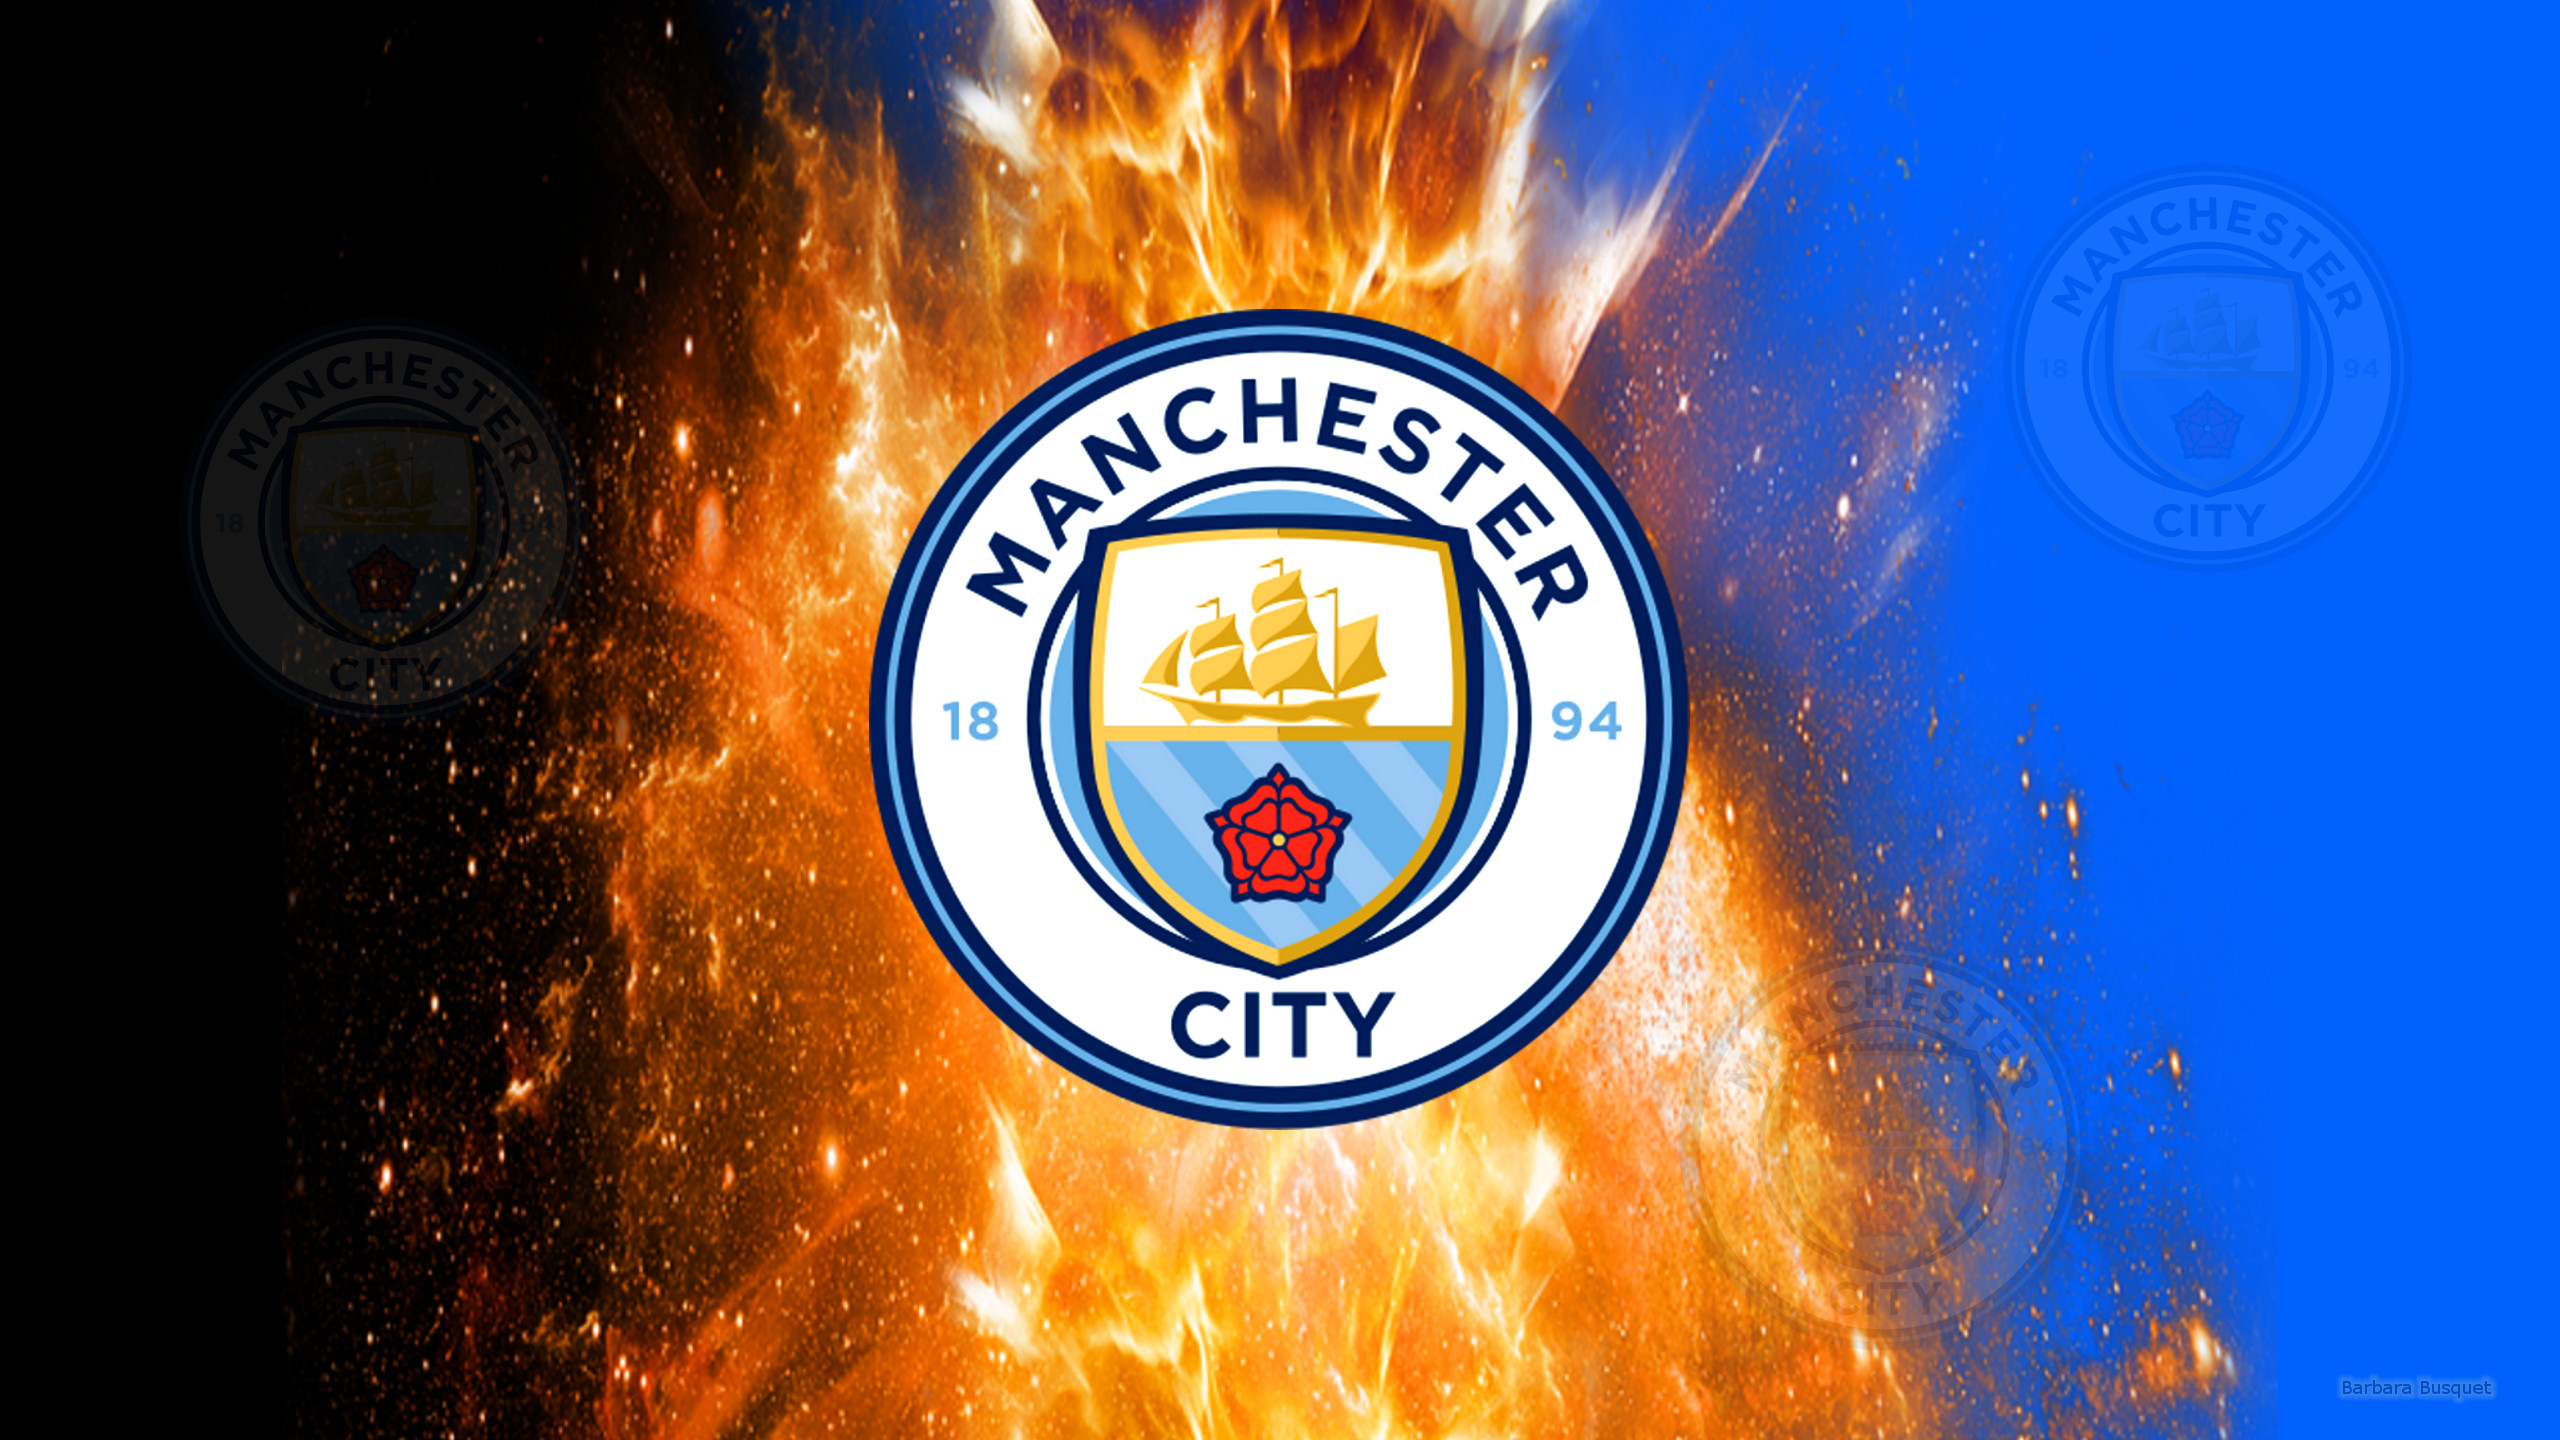 Manchester City Wallpapers   Barbaras HD Wallpapers 2560x1440